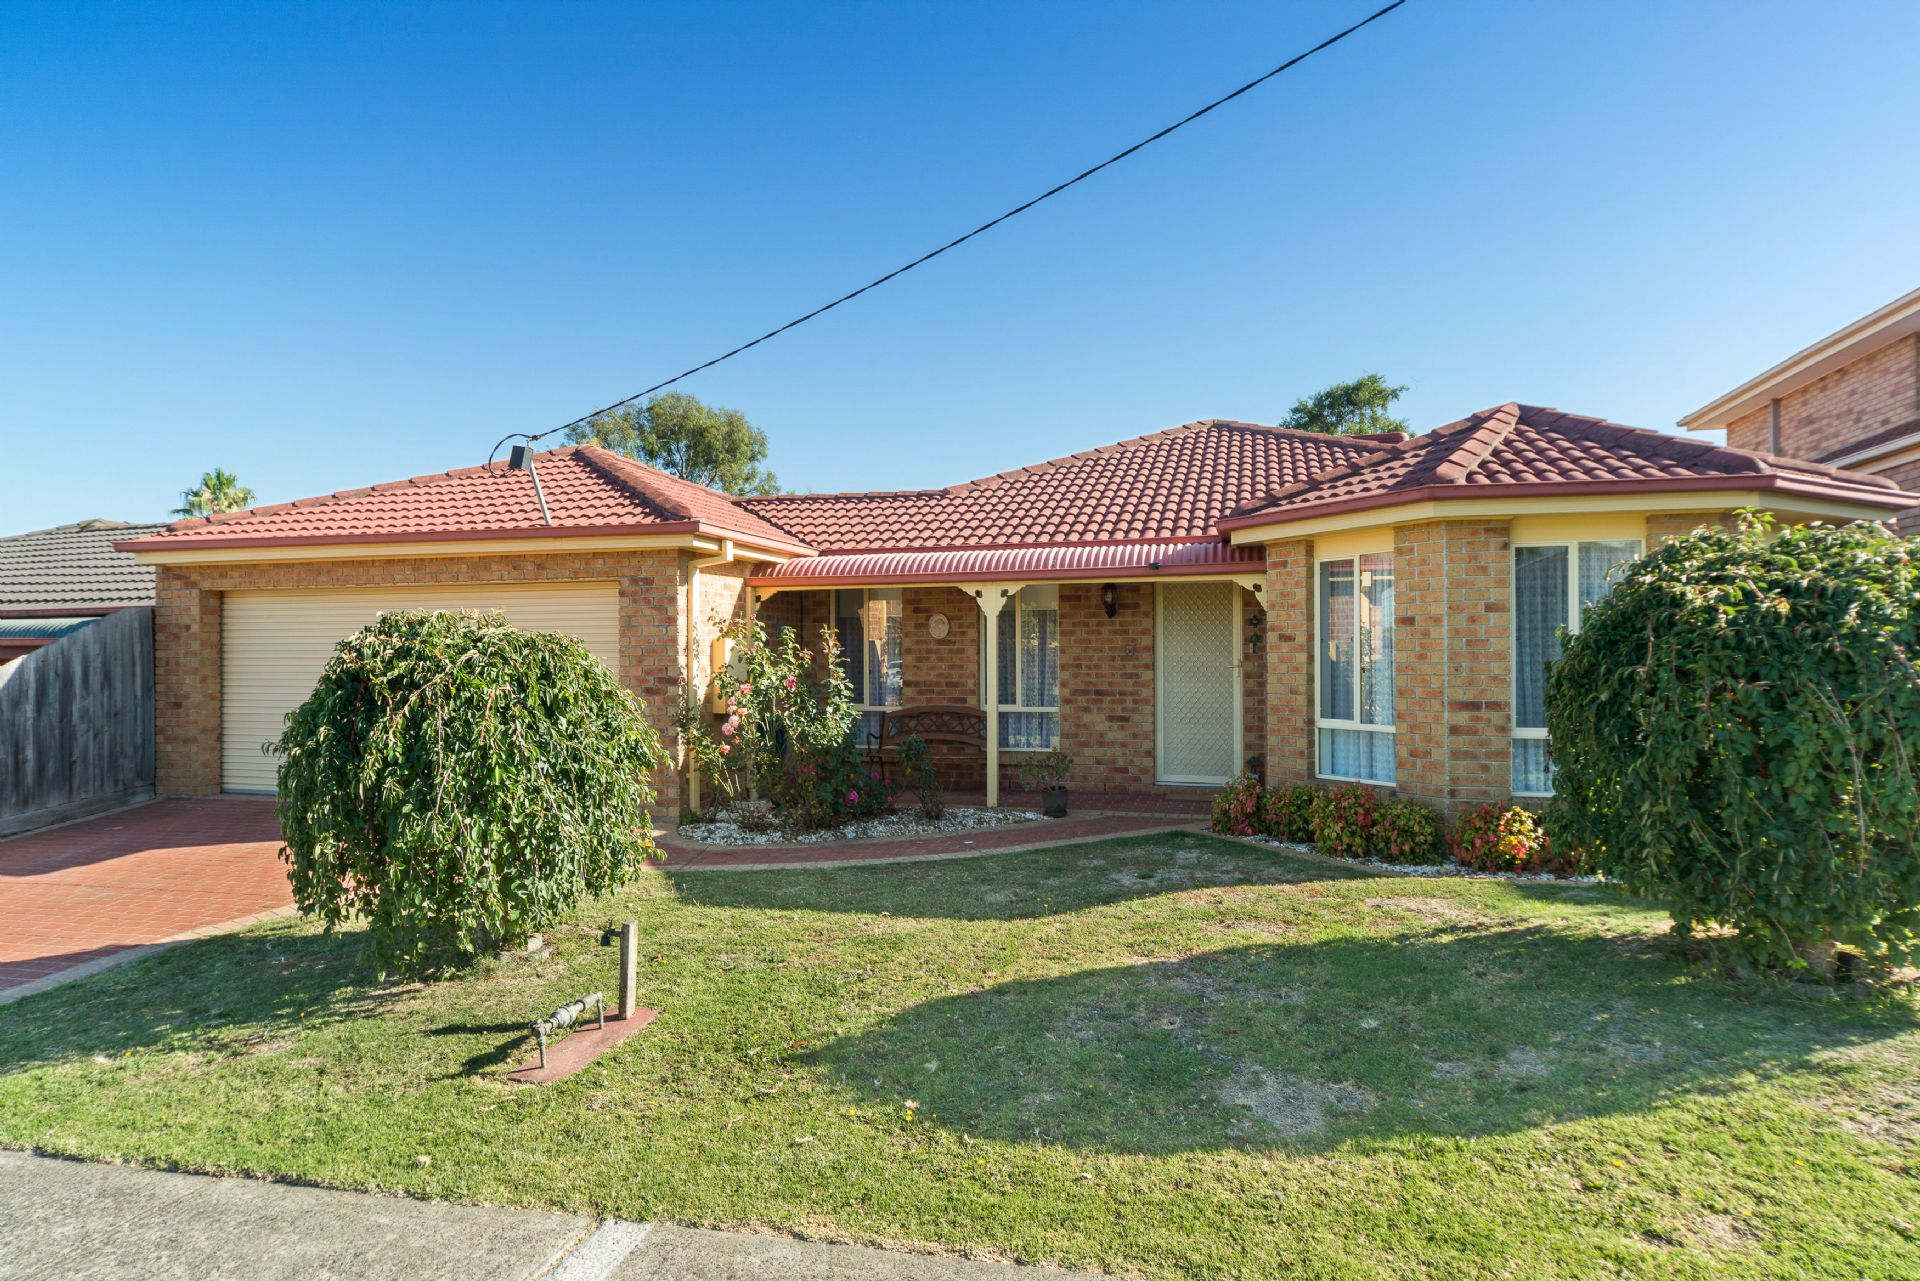 67 Gamble Road, CARRUM DOWNS, VIC, 3201 - Image